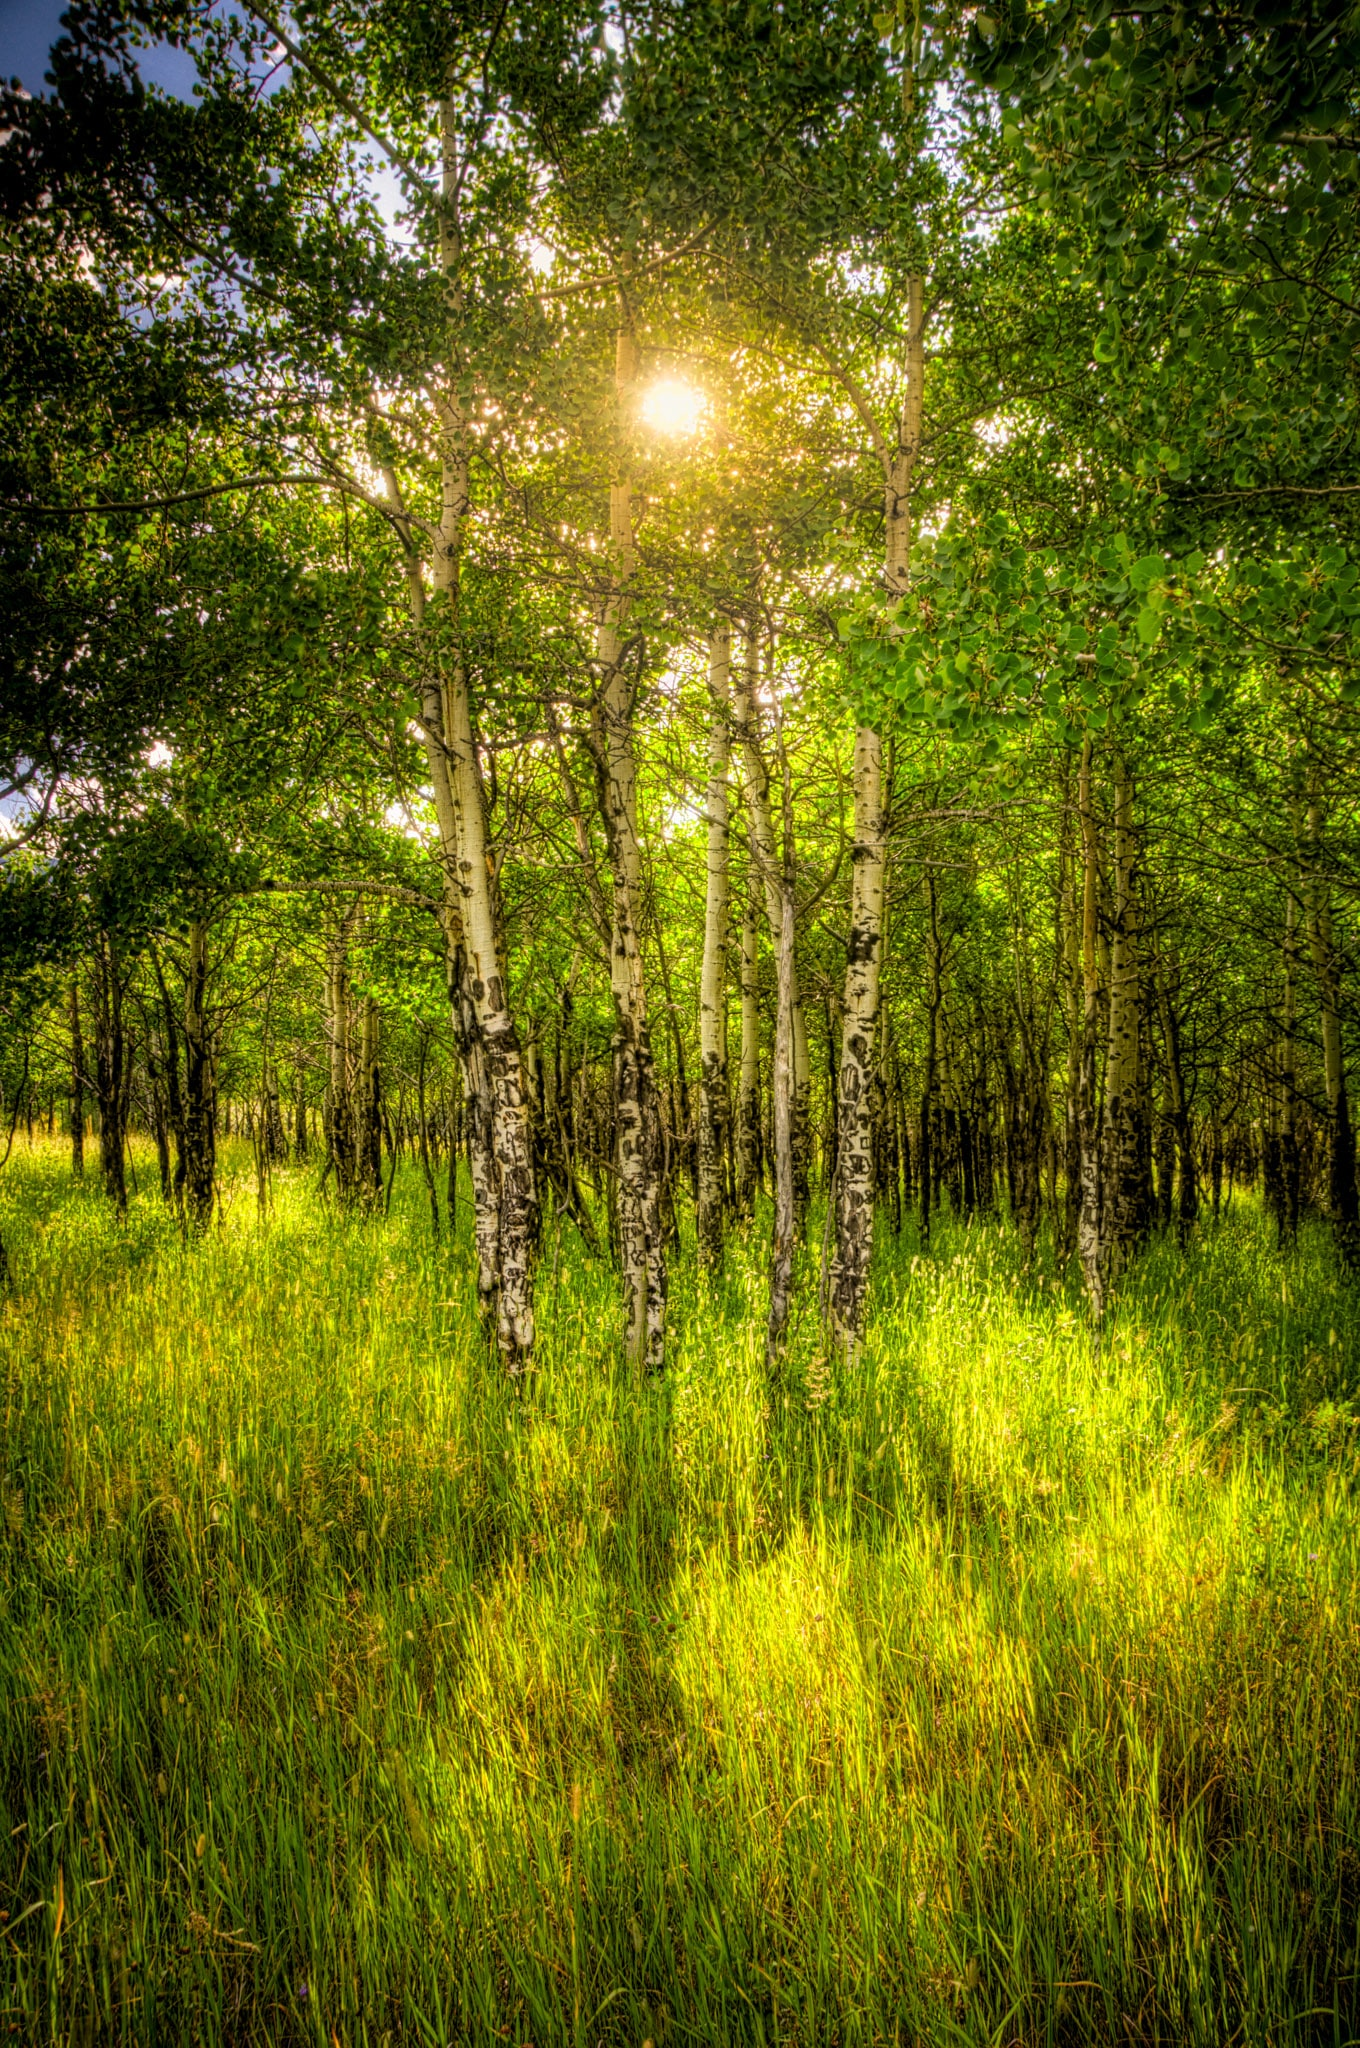 Summer sun shines through a grove of aspens and casts shadows in the grass.